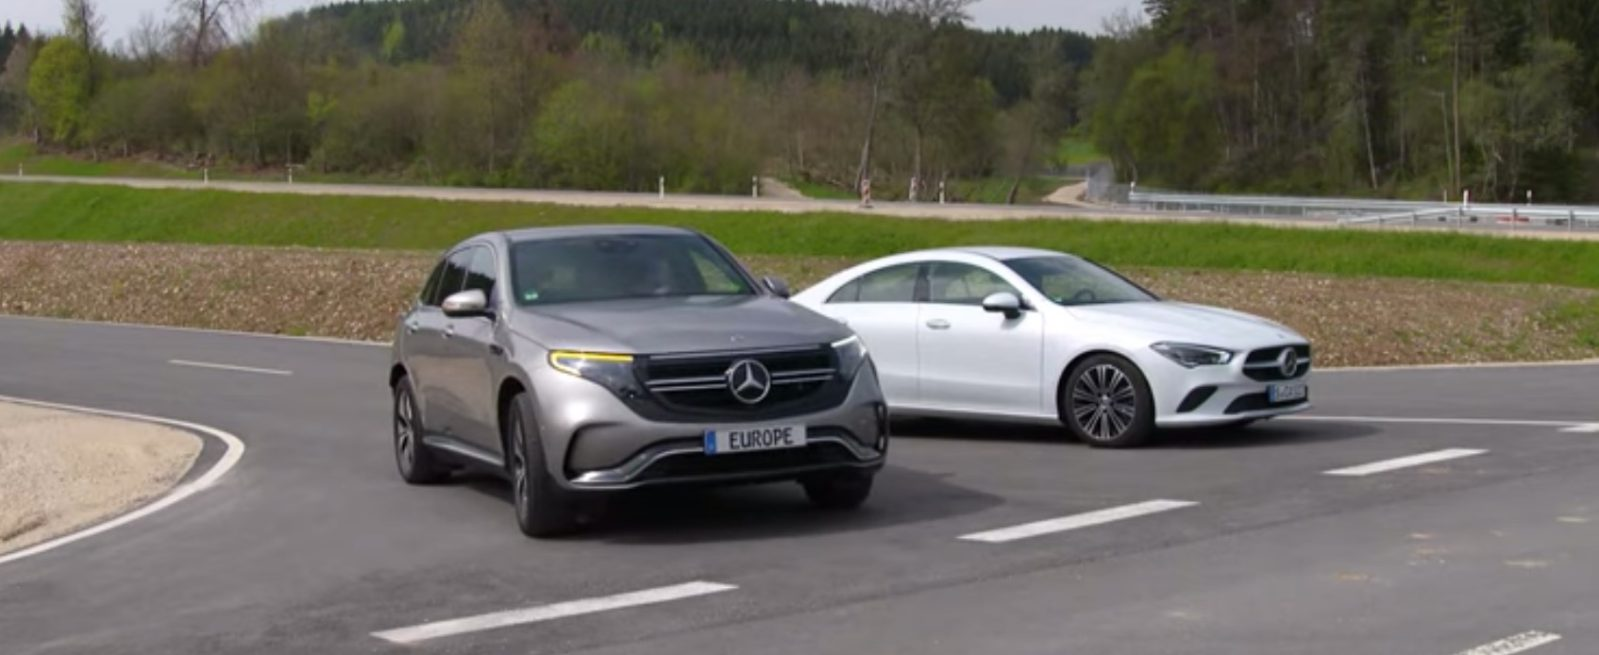 Mercedes-Benz demonstrates pedestrian sound for EQC electric SUV as it becomes mandatory